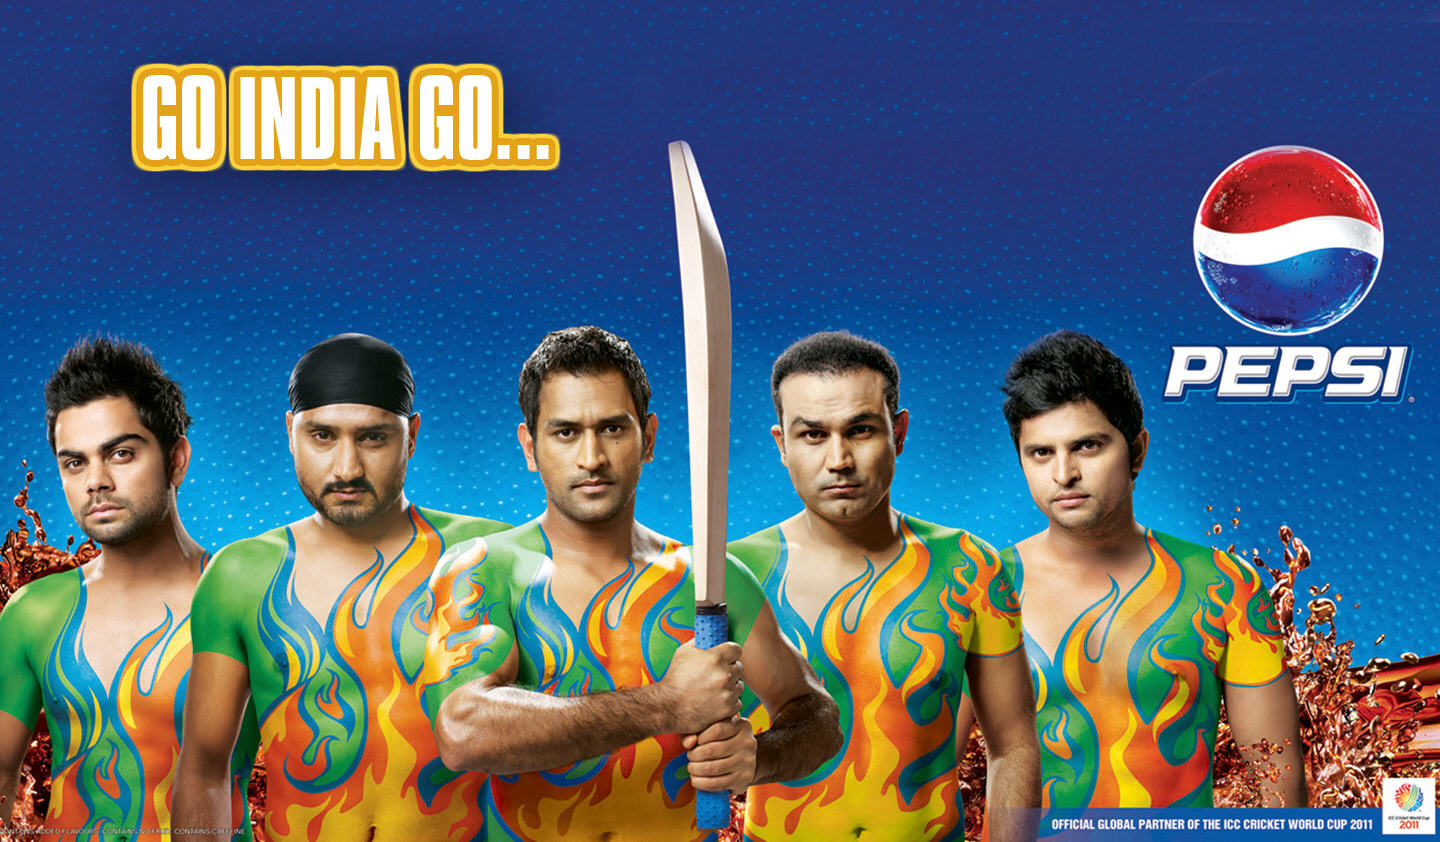 http://3.bp.blogspot.com/-tr3EvIKyVqM/TVouro72aJI/AAAAAAAABI0/EAIUNaw_y_k/s1600/ICC-world-cup-2011-Wallpapers-India-team-in-pepsi-ad.jpg